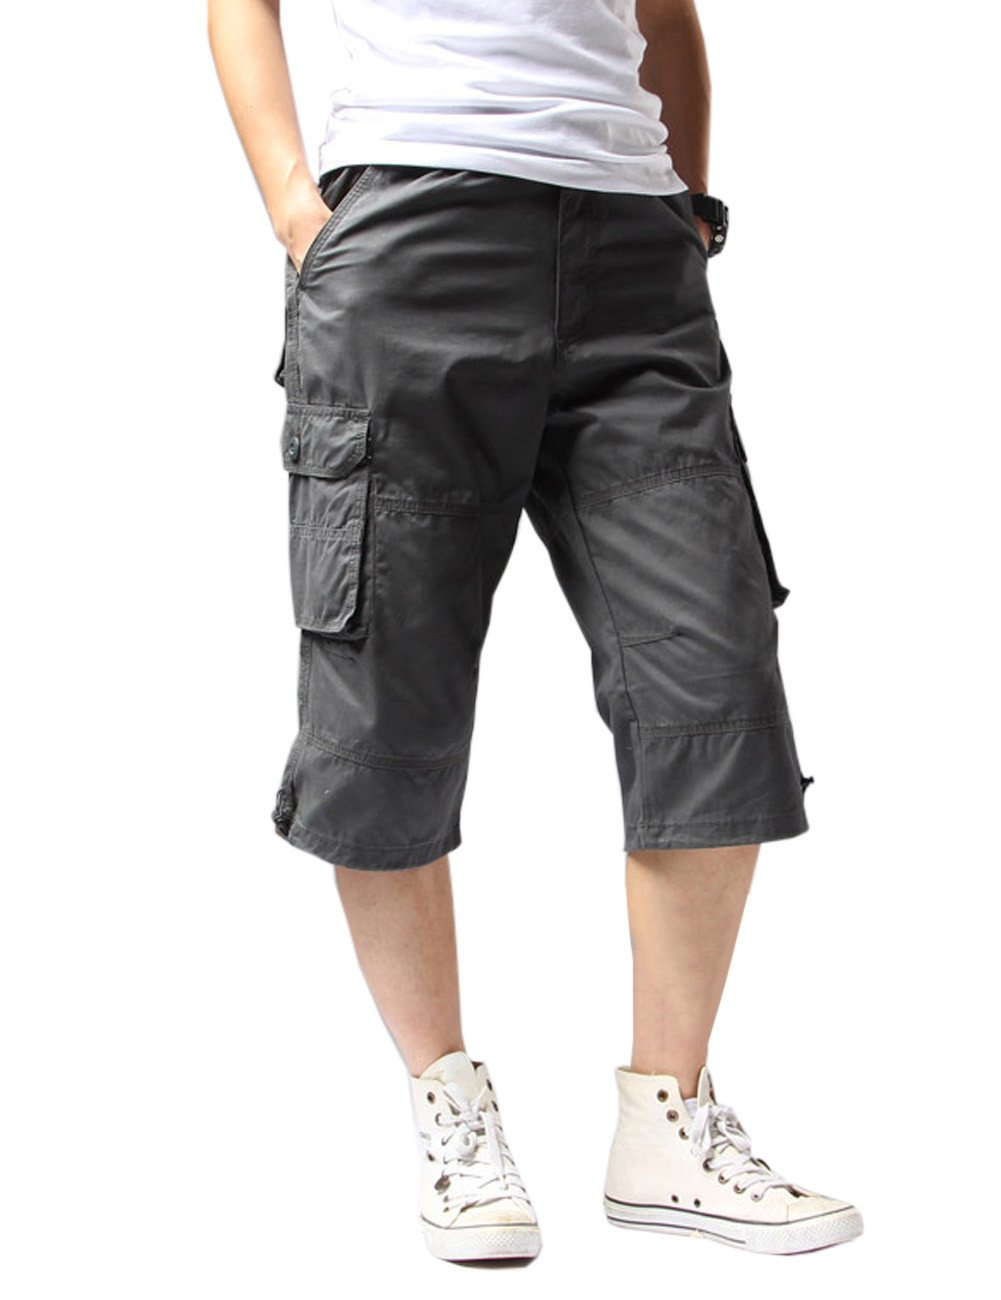 Crazy Men's Cargo Shorts Quick-dry Summer Outdoor Shorts Cropped Trousers-grey-3XL